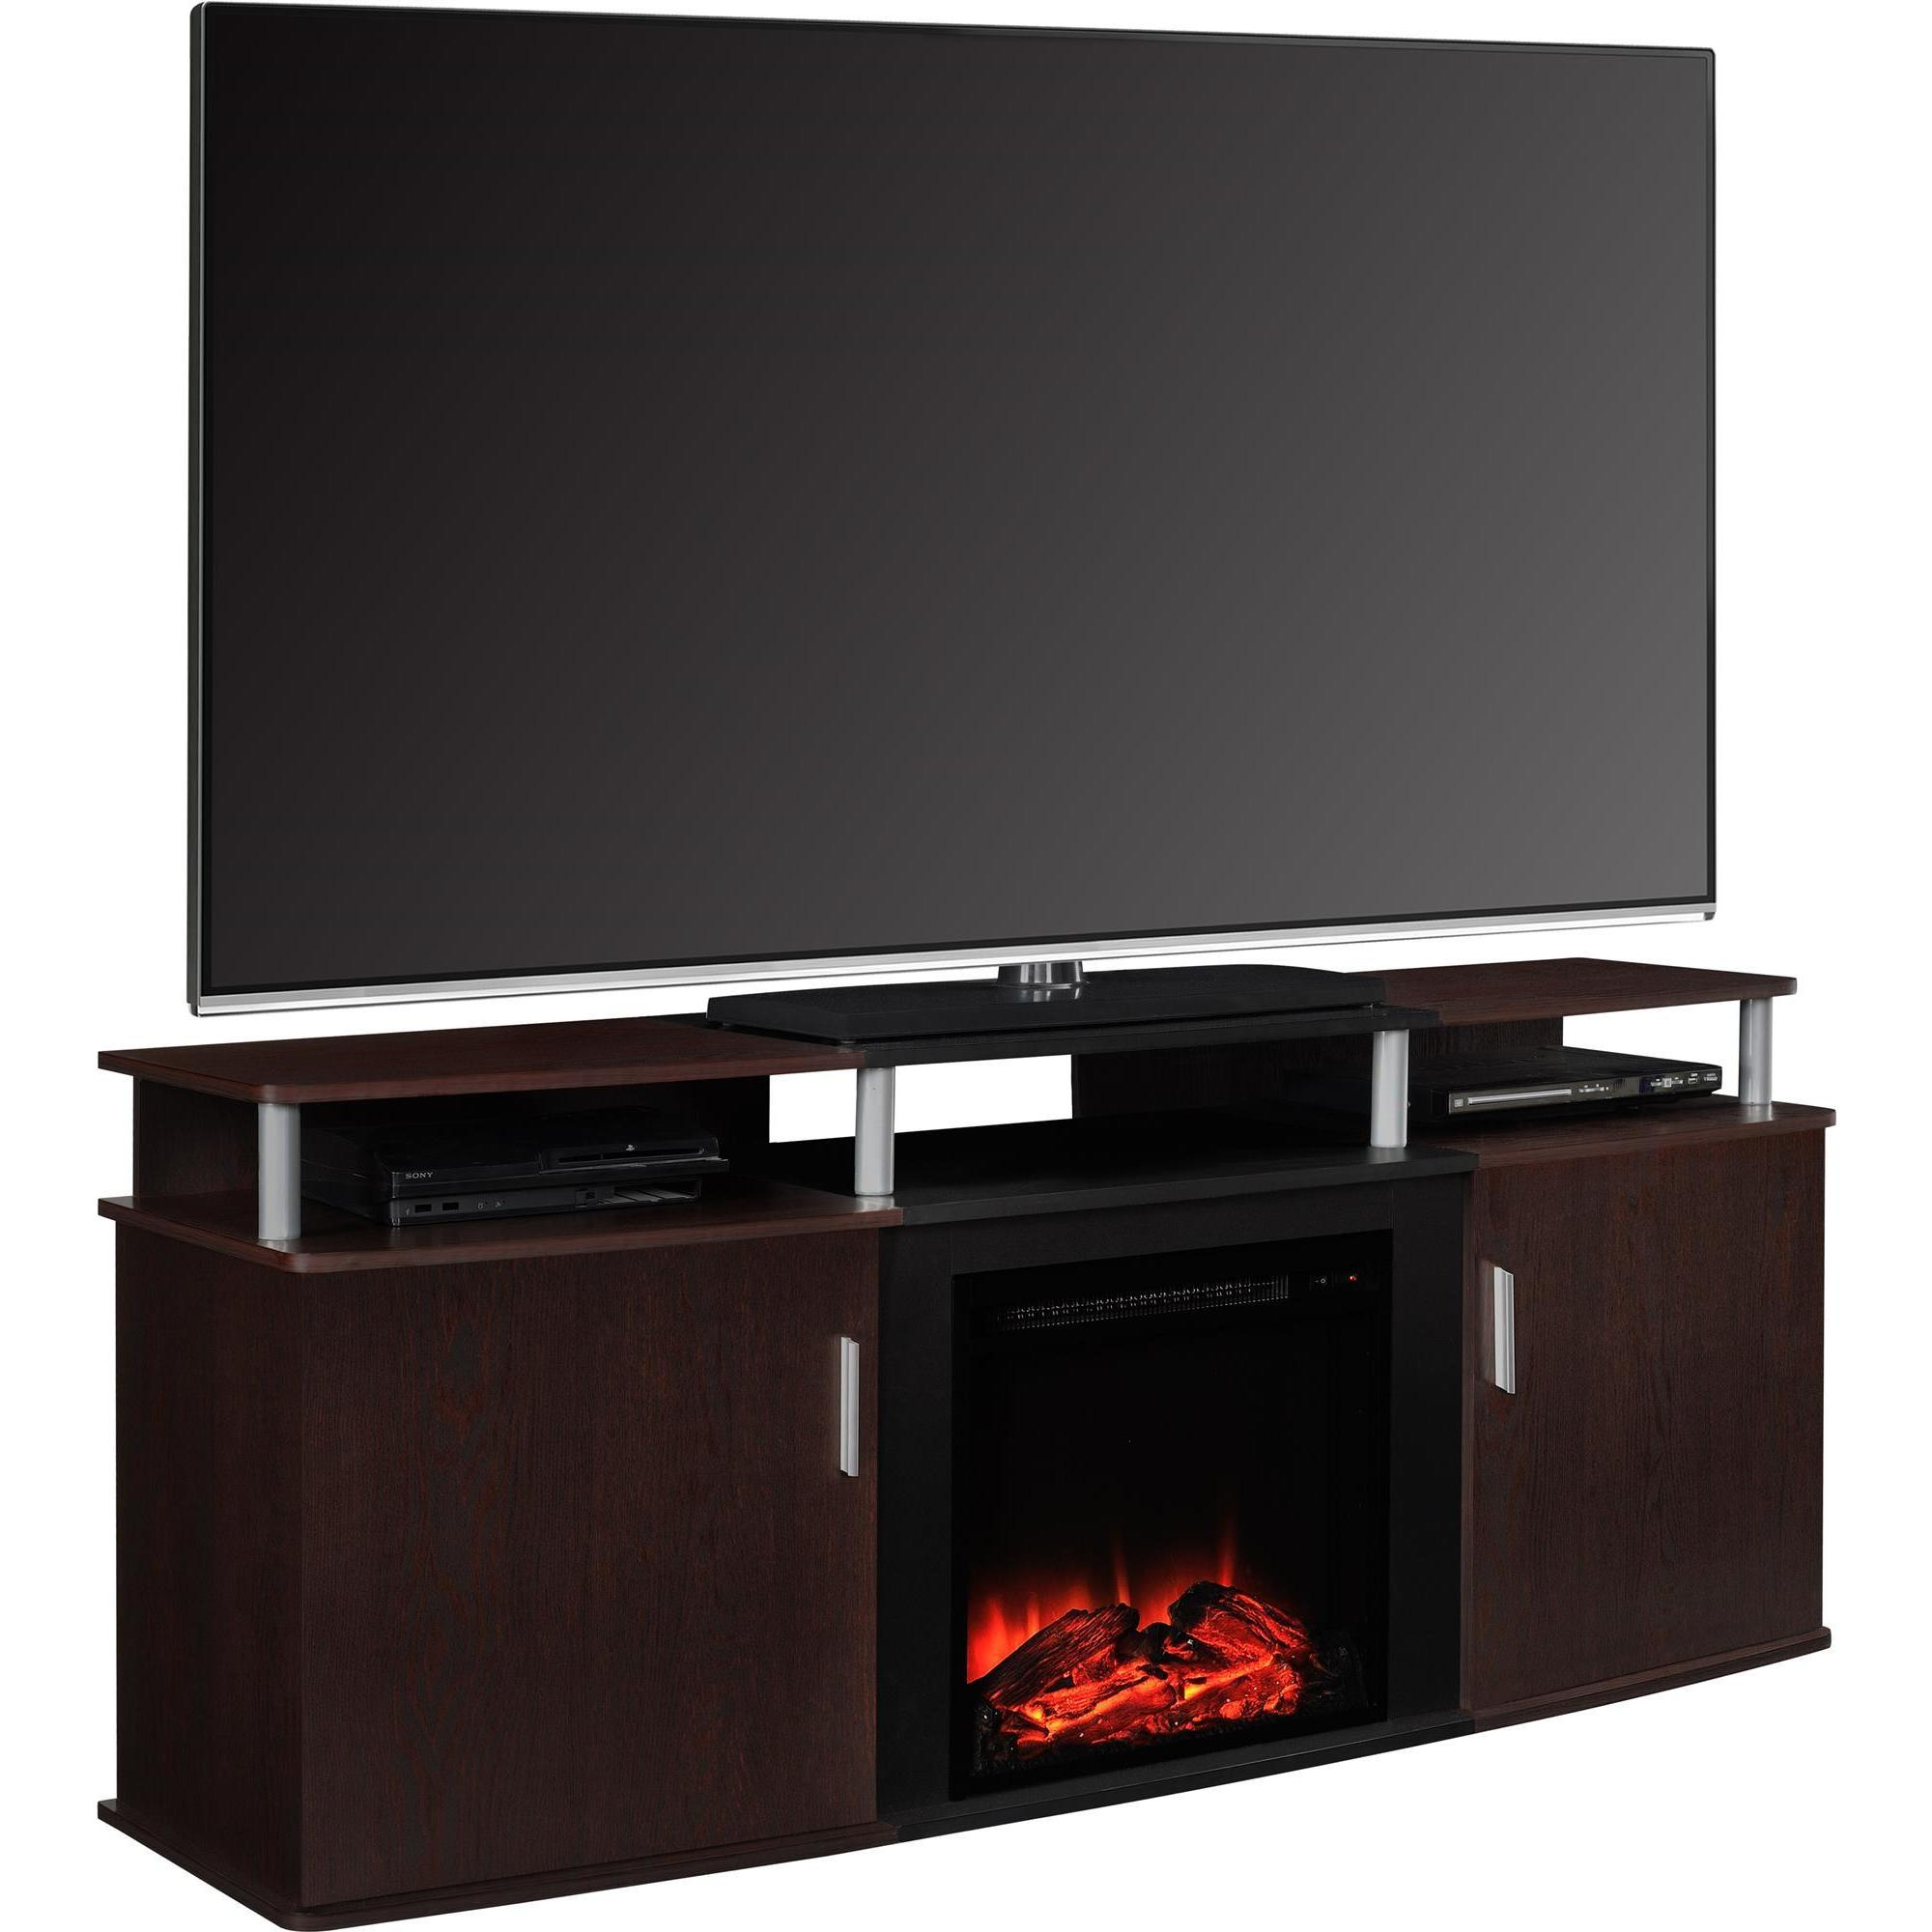 console country town tv electric bryant furniture fireplace shop